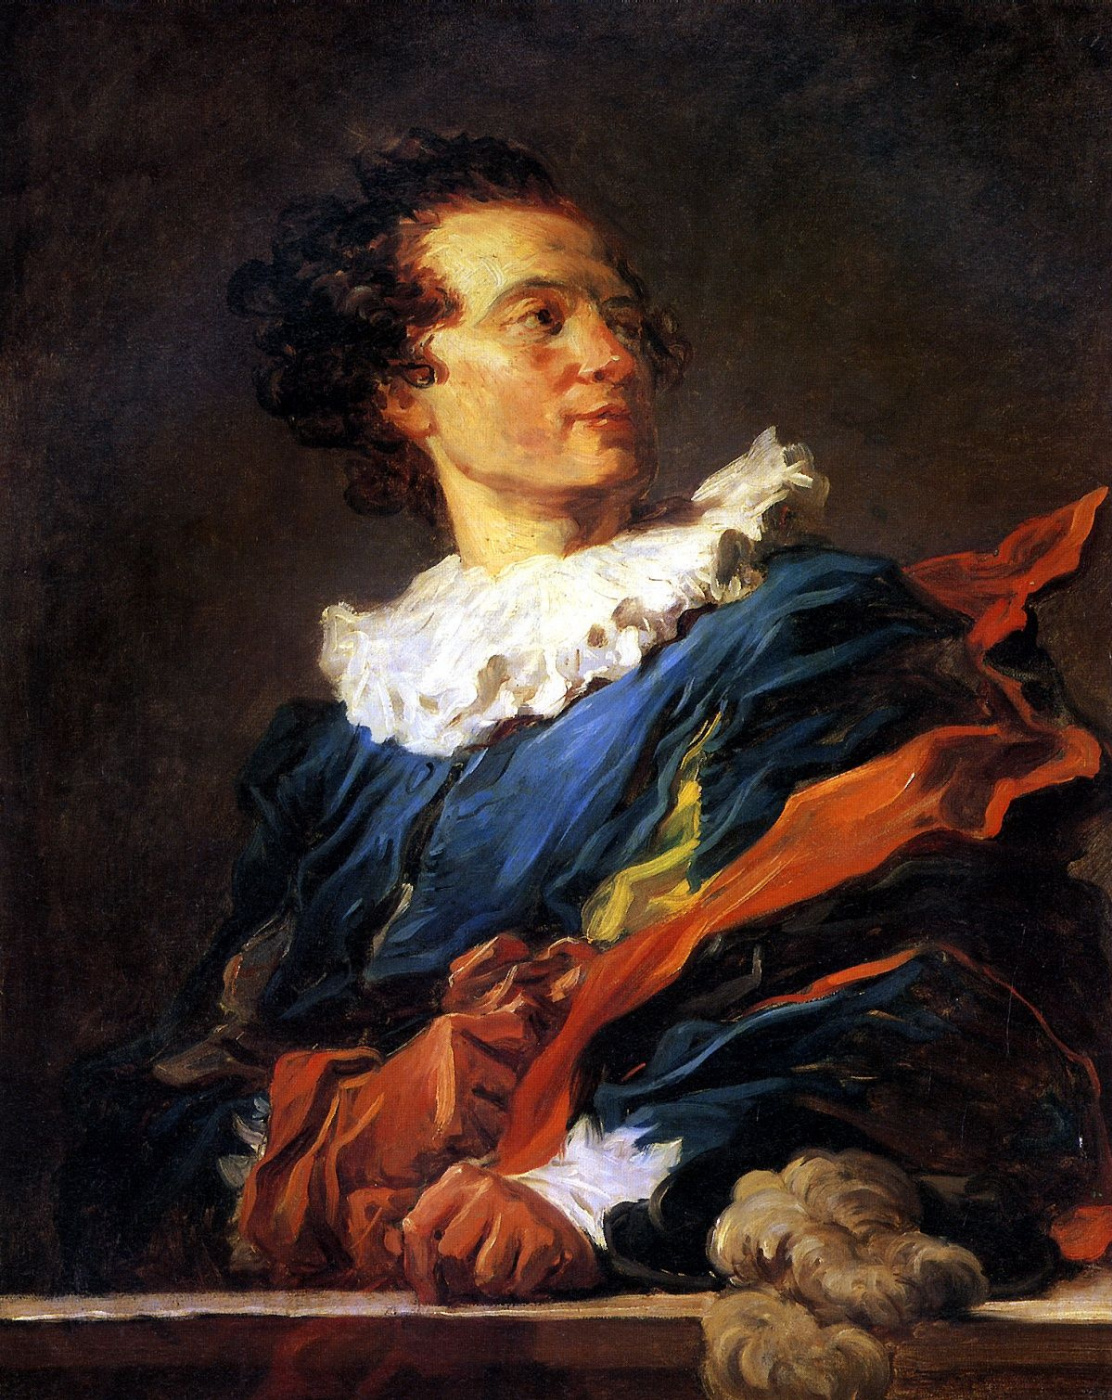 Jean Honore Fragonard. Portrait of Jean-Claude Richard de Saint-Non